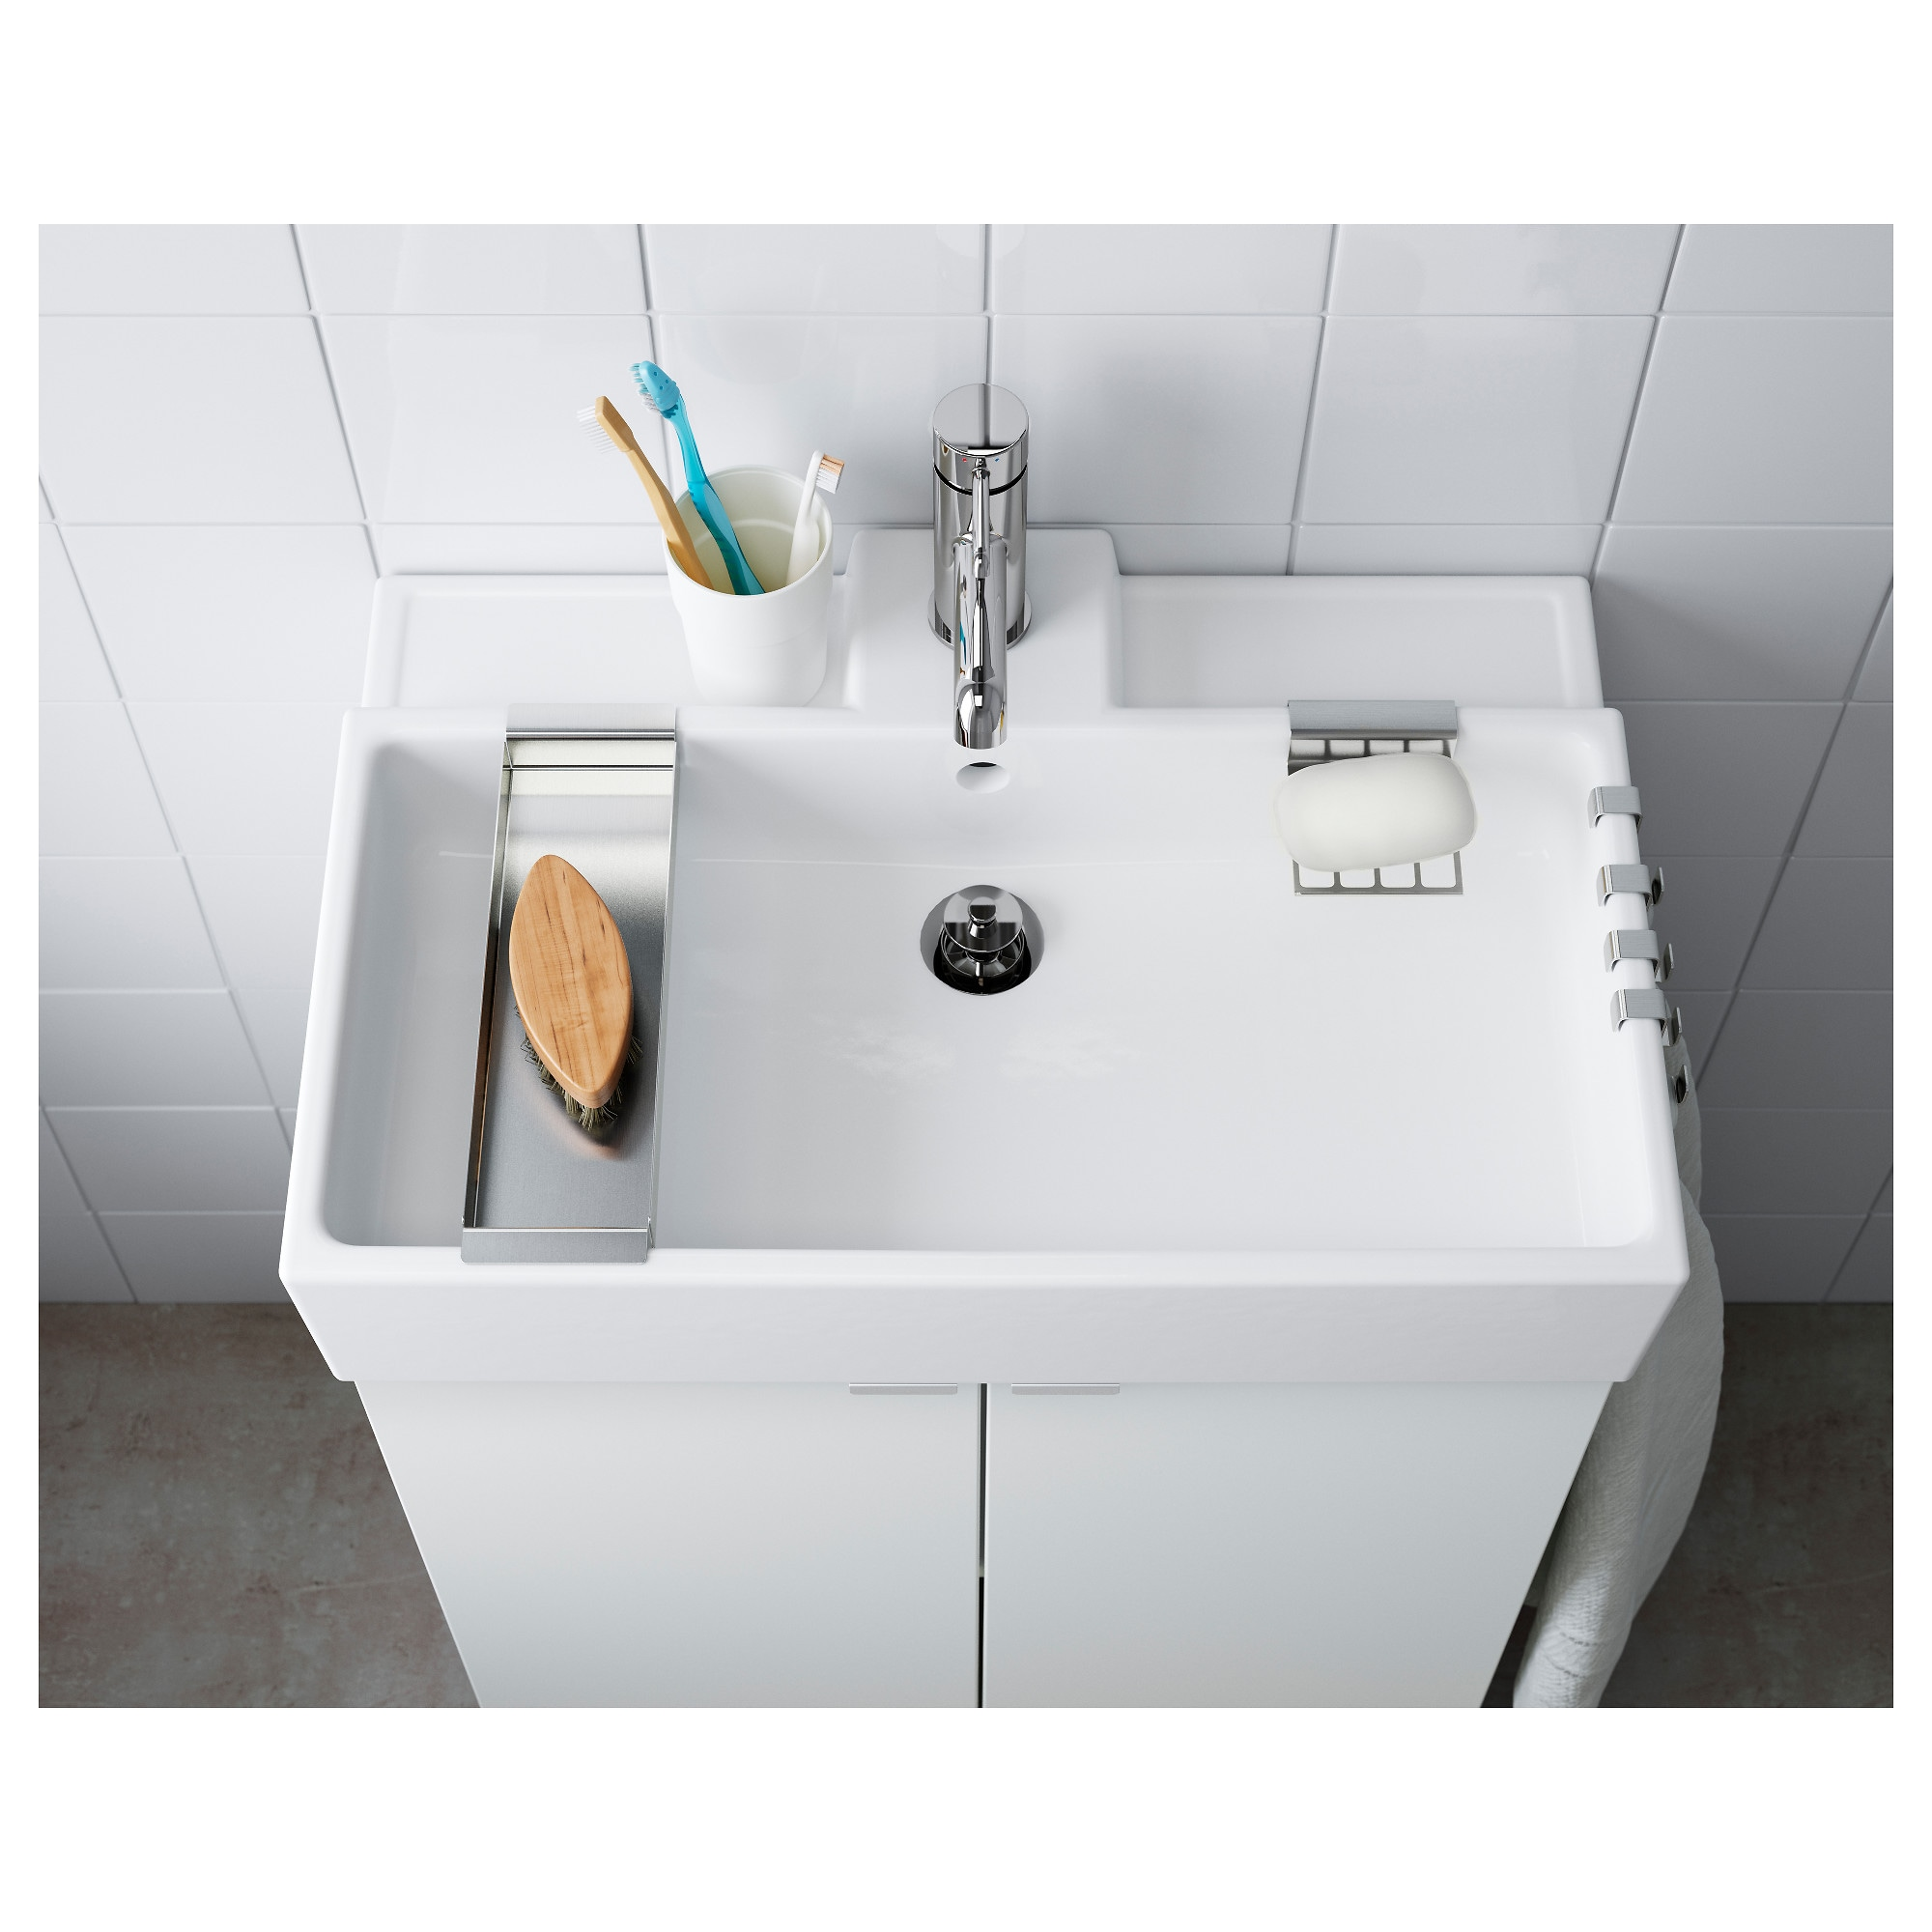 Bathroom sinks with options for everyone - Bathroom Sinks With Options For Everyone 38